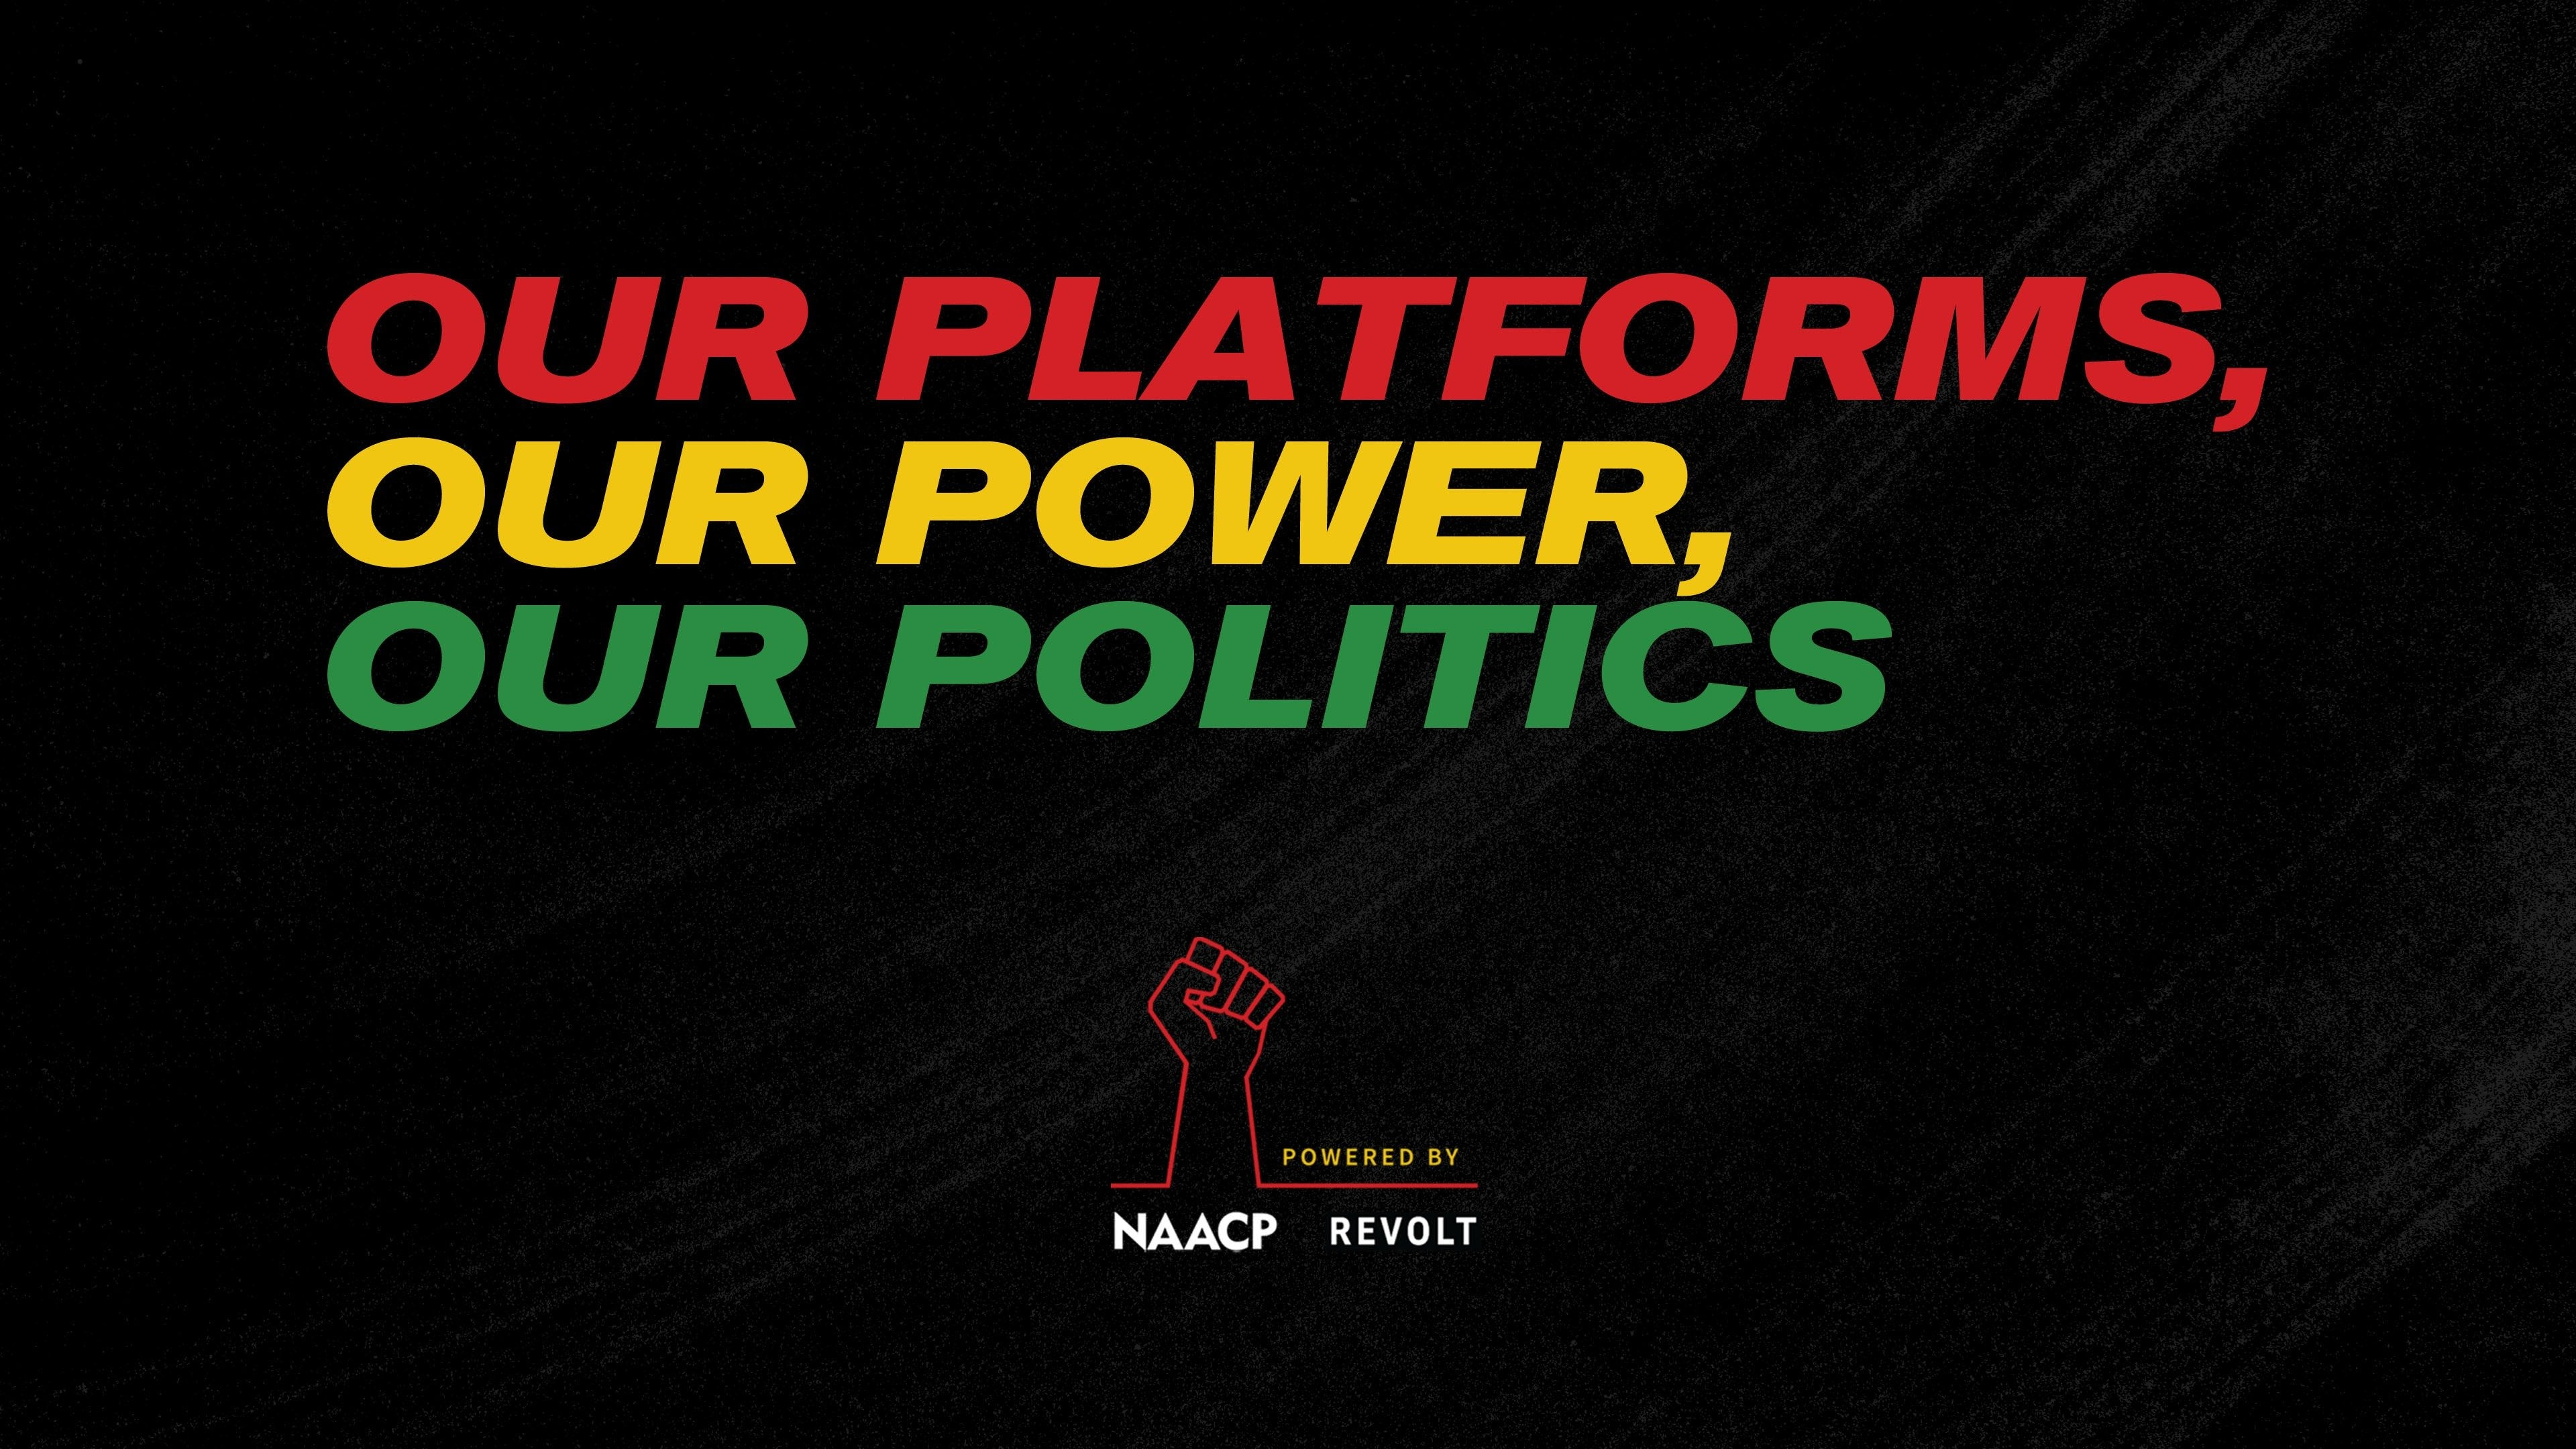 Our Platforms, Our Power, Our Politics